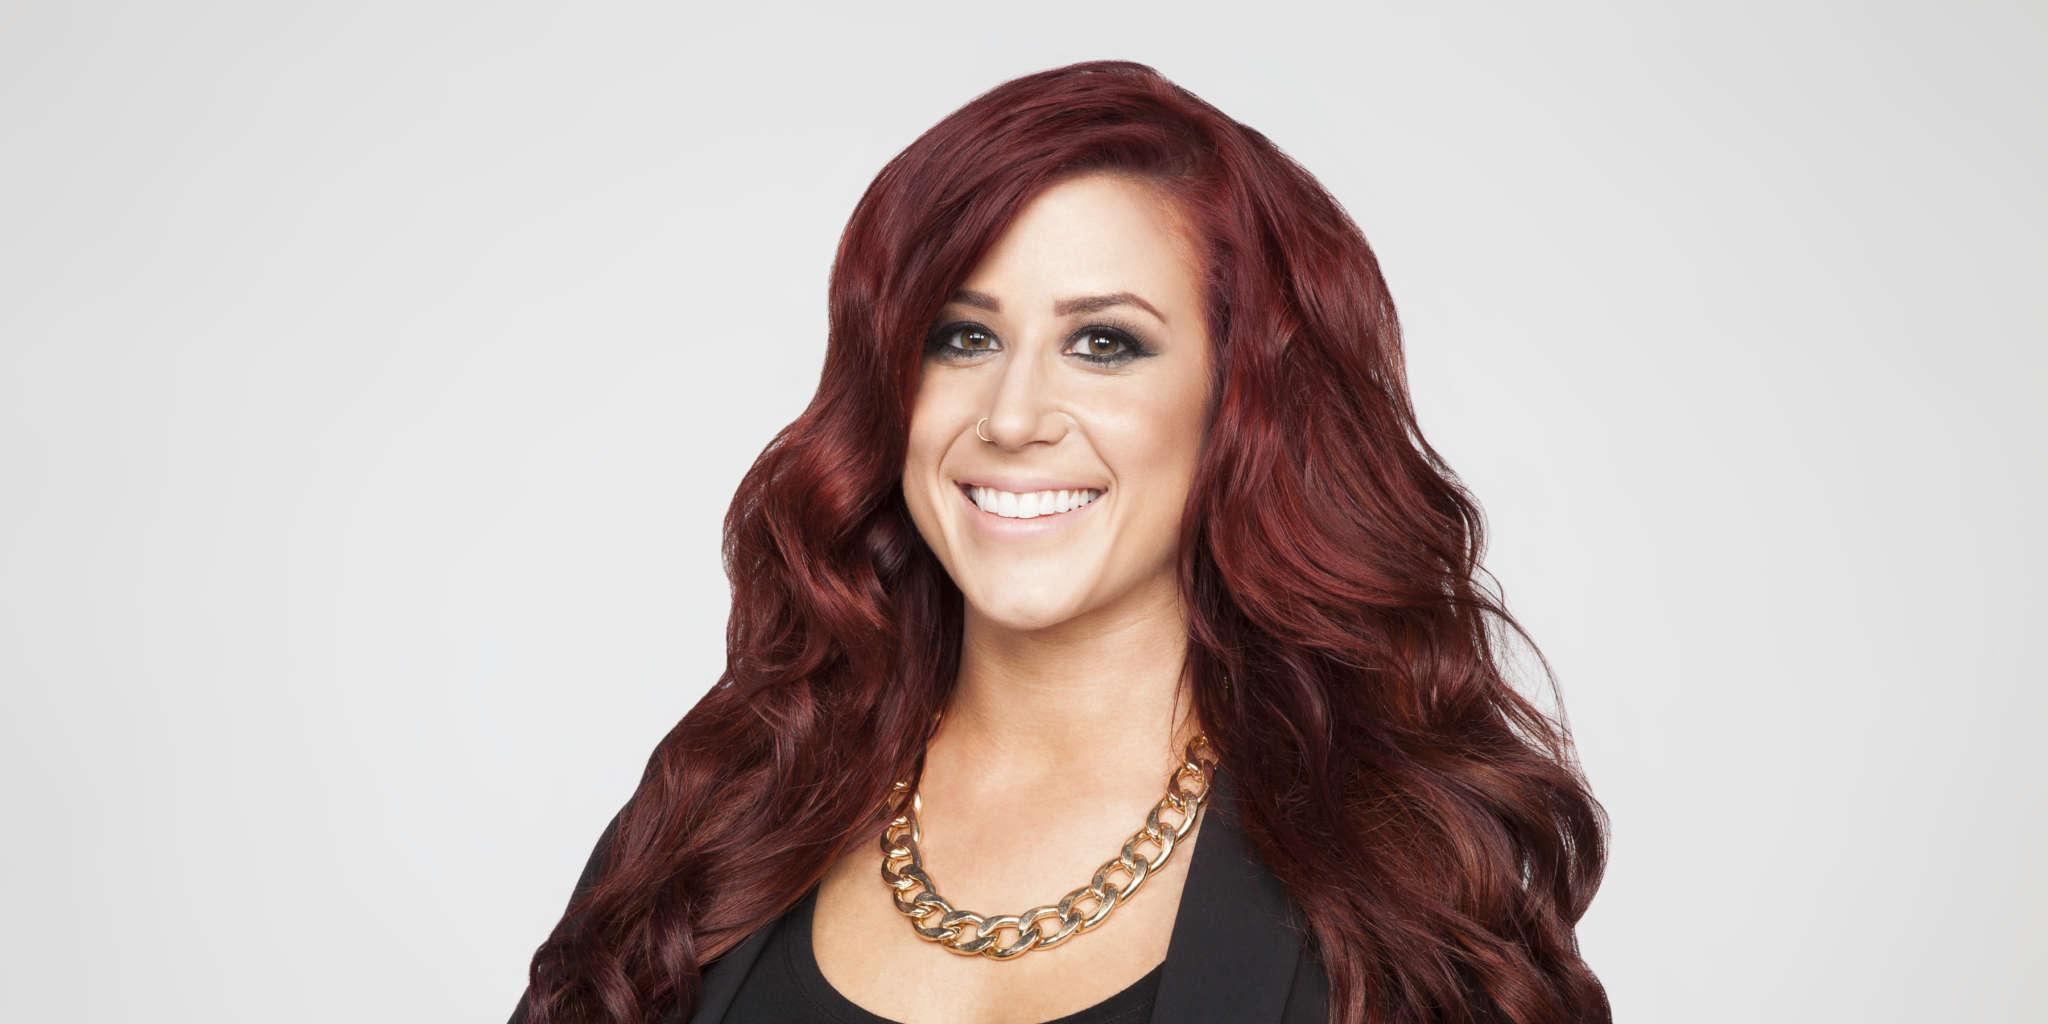 Chelsea Houska Gets Mom-Shamed After Allowing 9-Year-Old Daughter To Wear Lipstick And Hoop Earrings To School